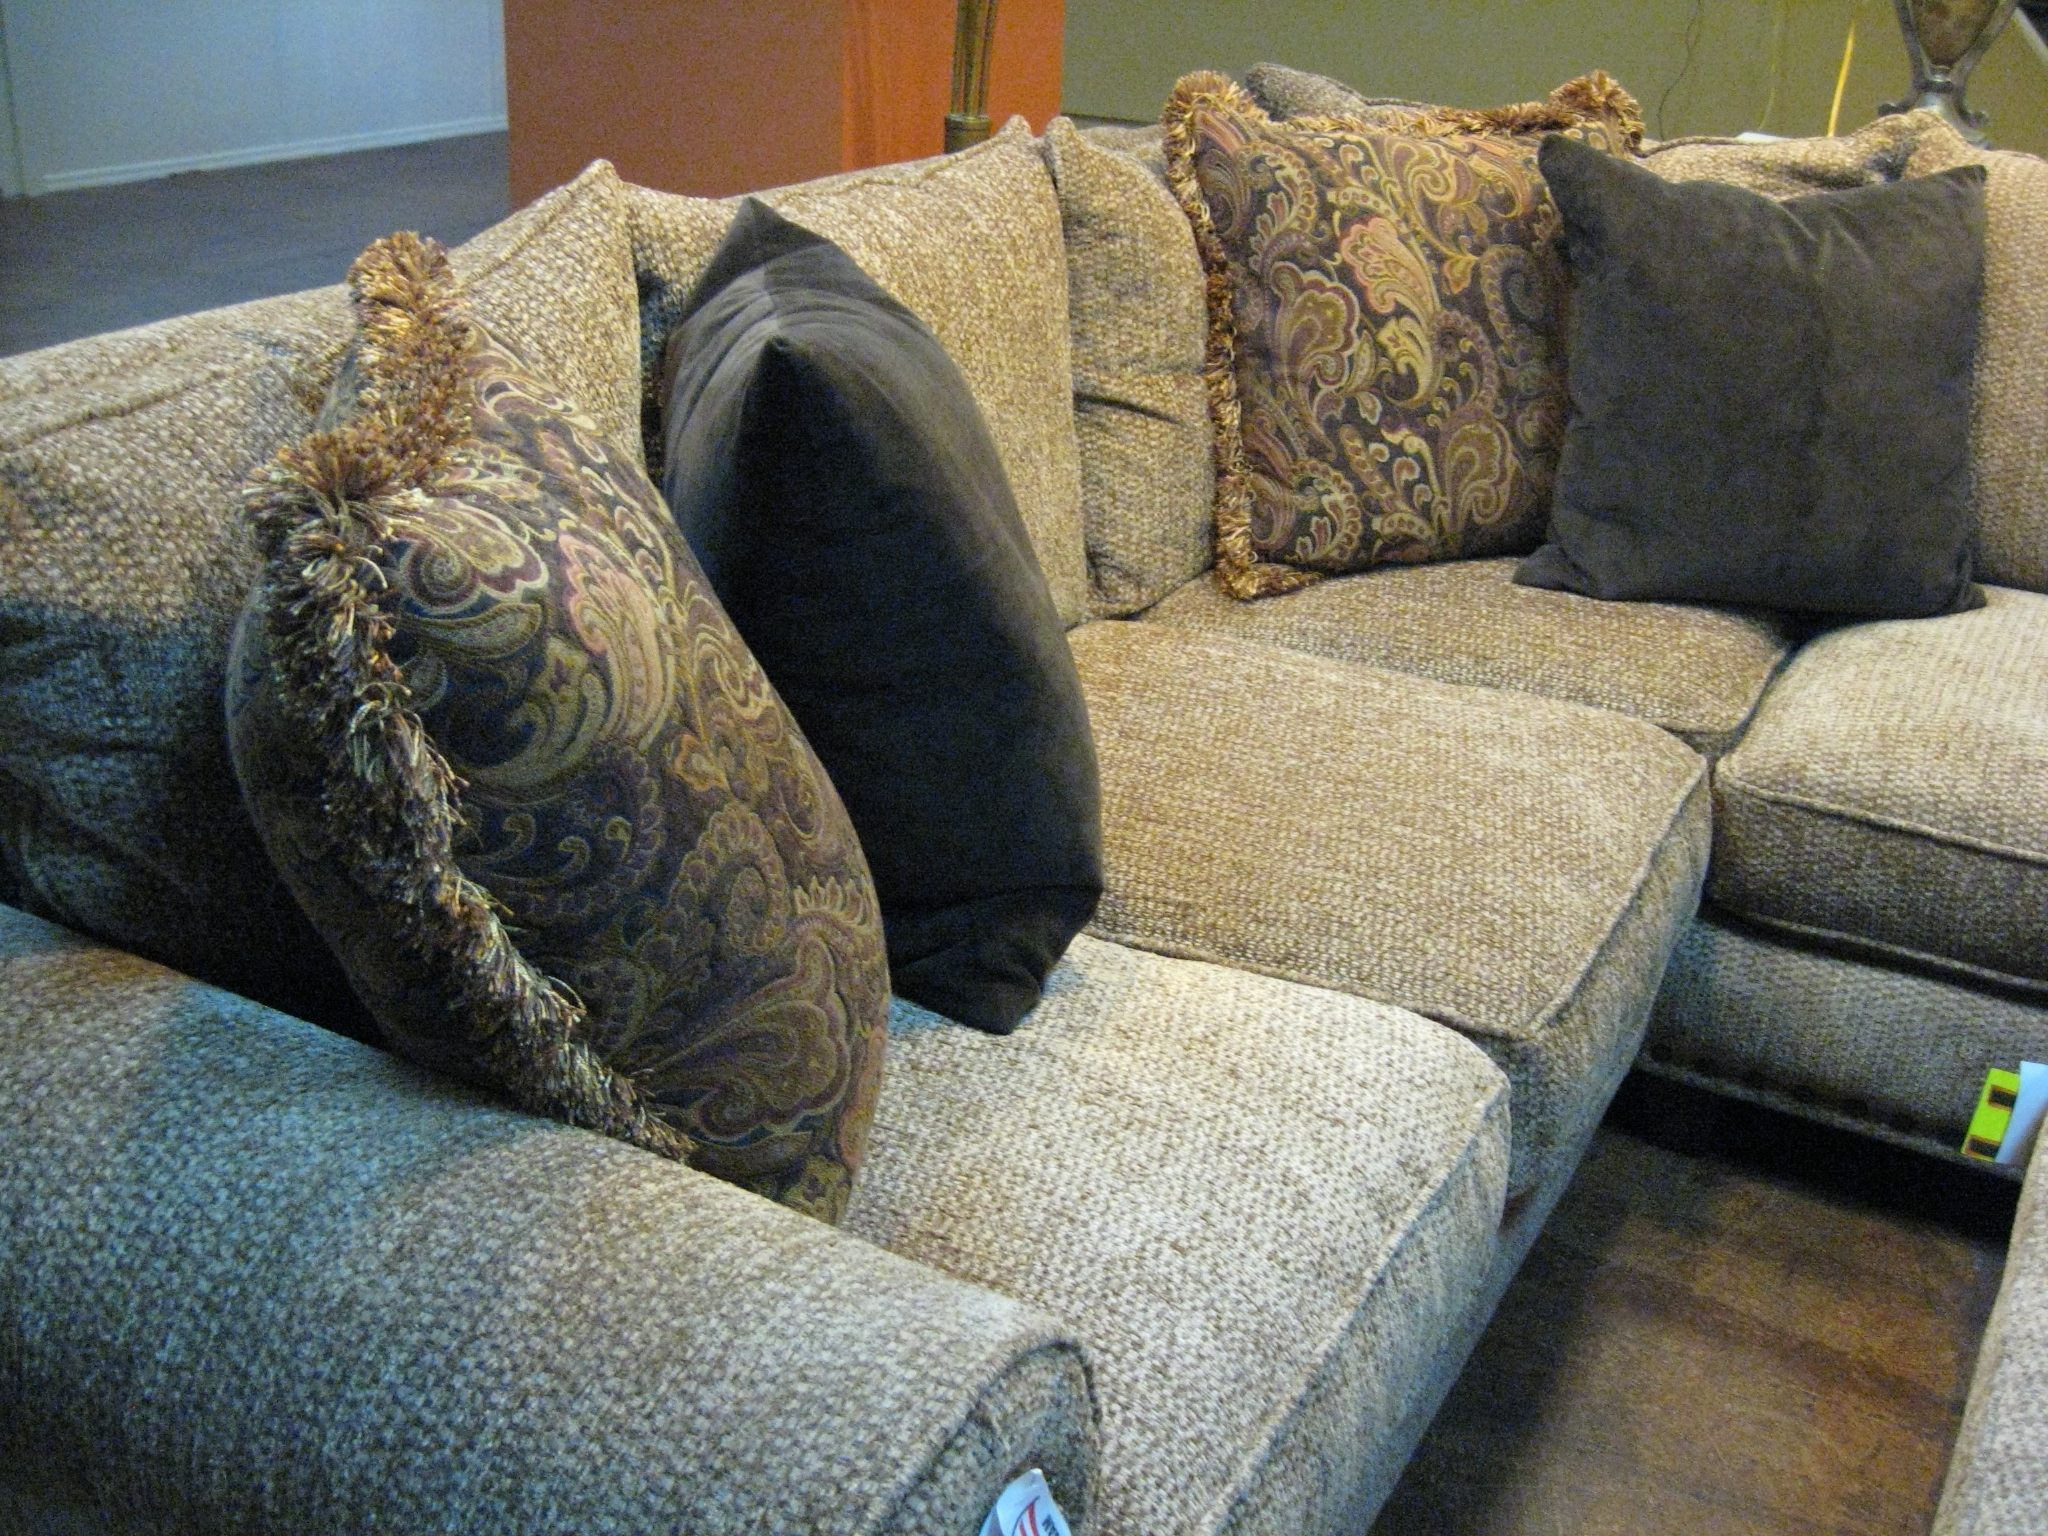 Robert Michael Sectional Sofa Phoenix Arizona Discount Outlet Throughout Best And Newest Phoenix Sectional Sofas (View 7 of 15)